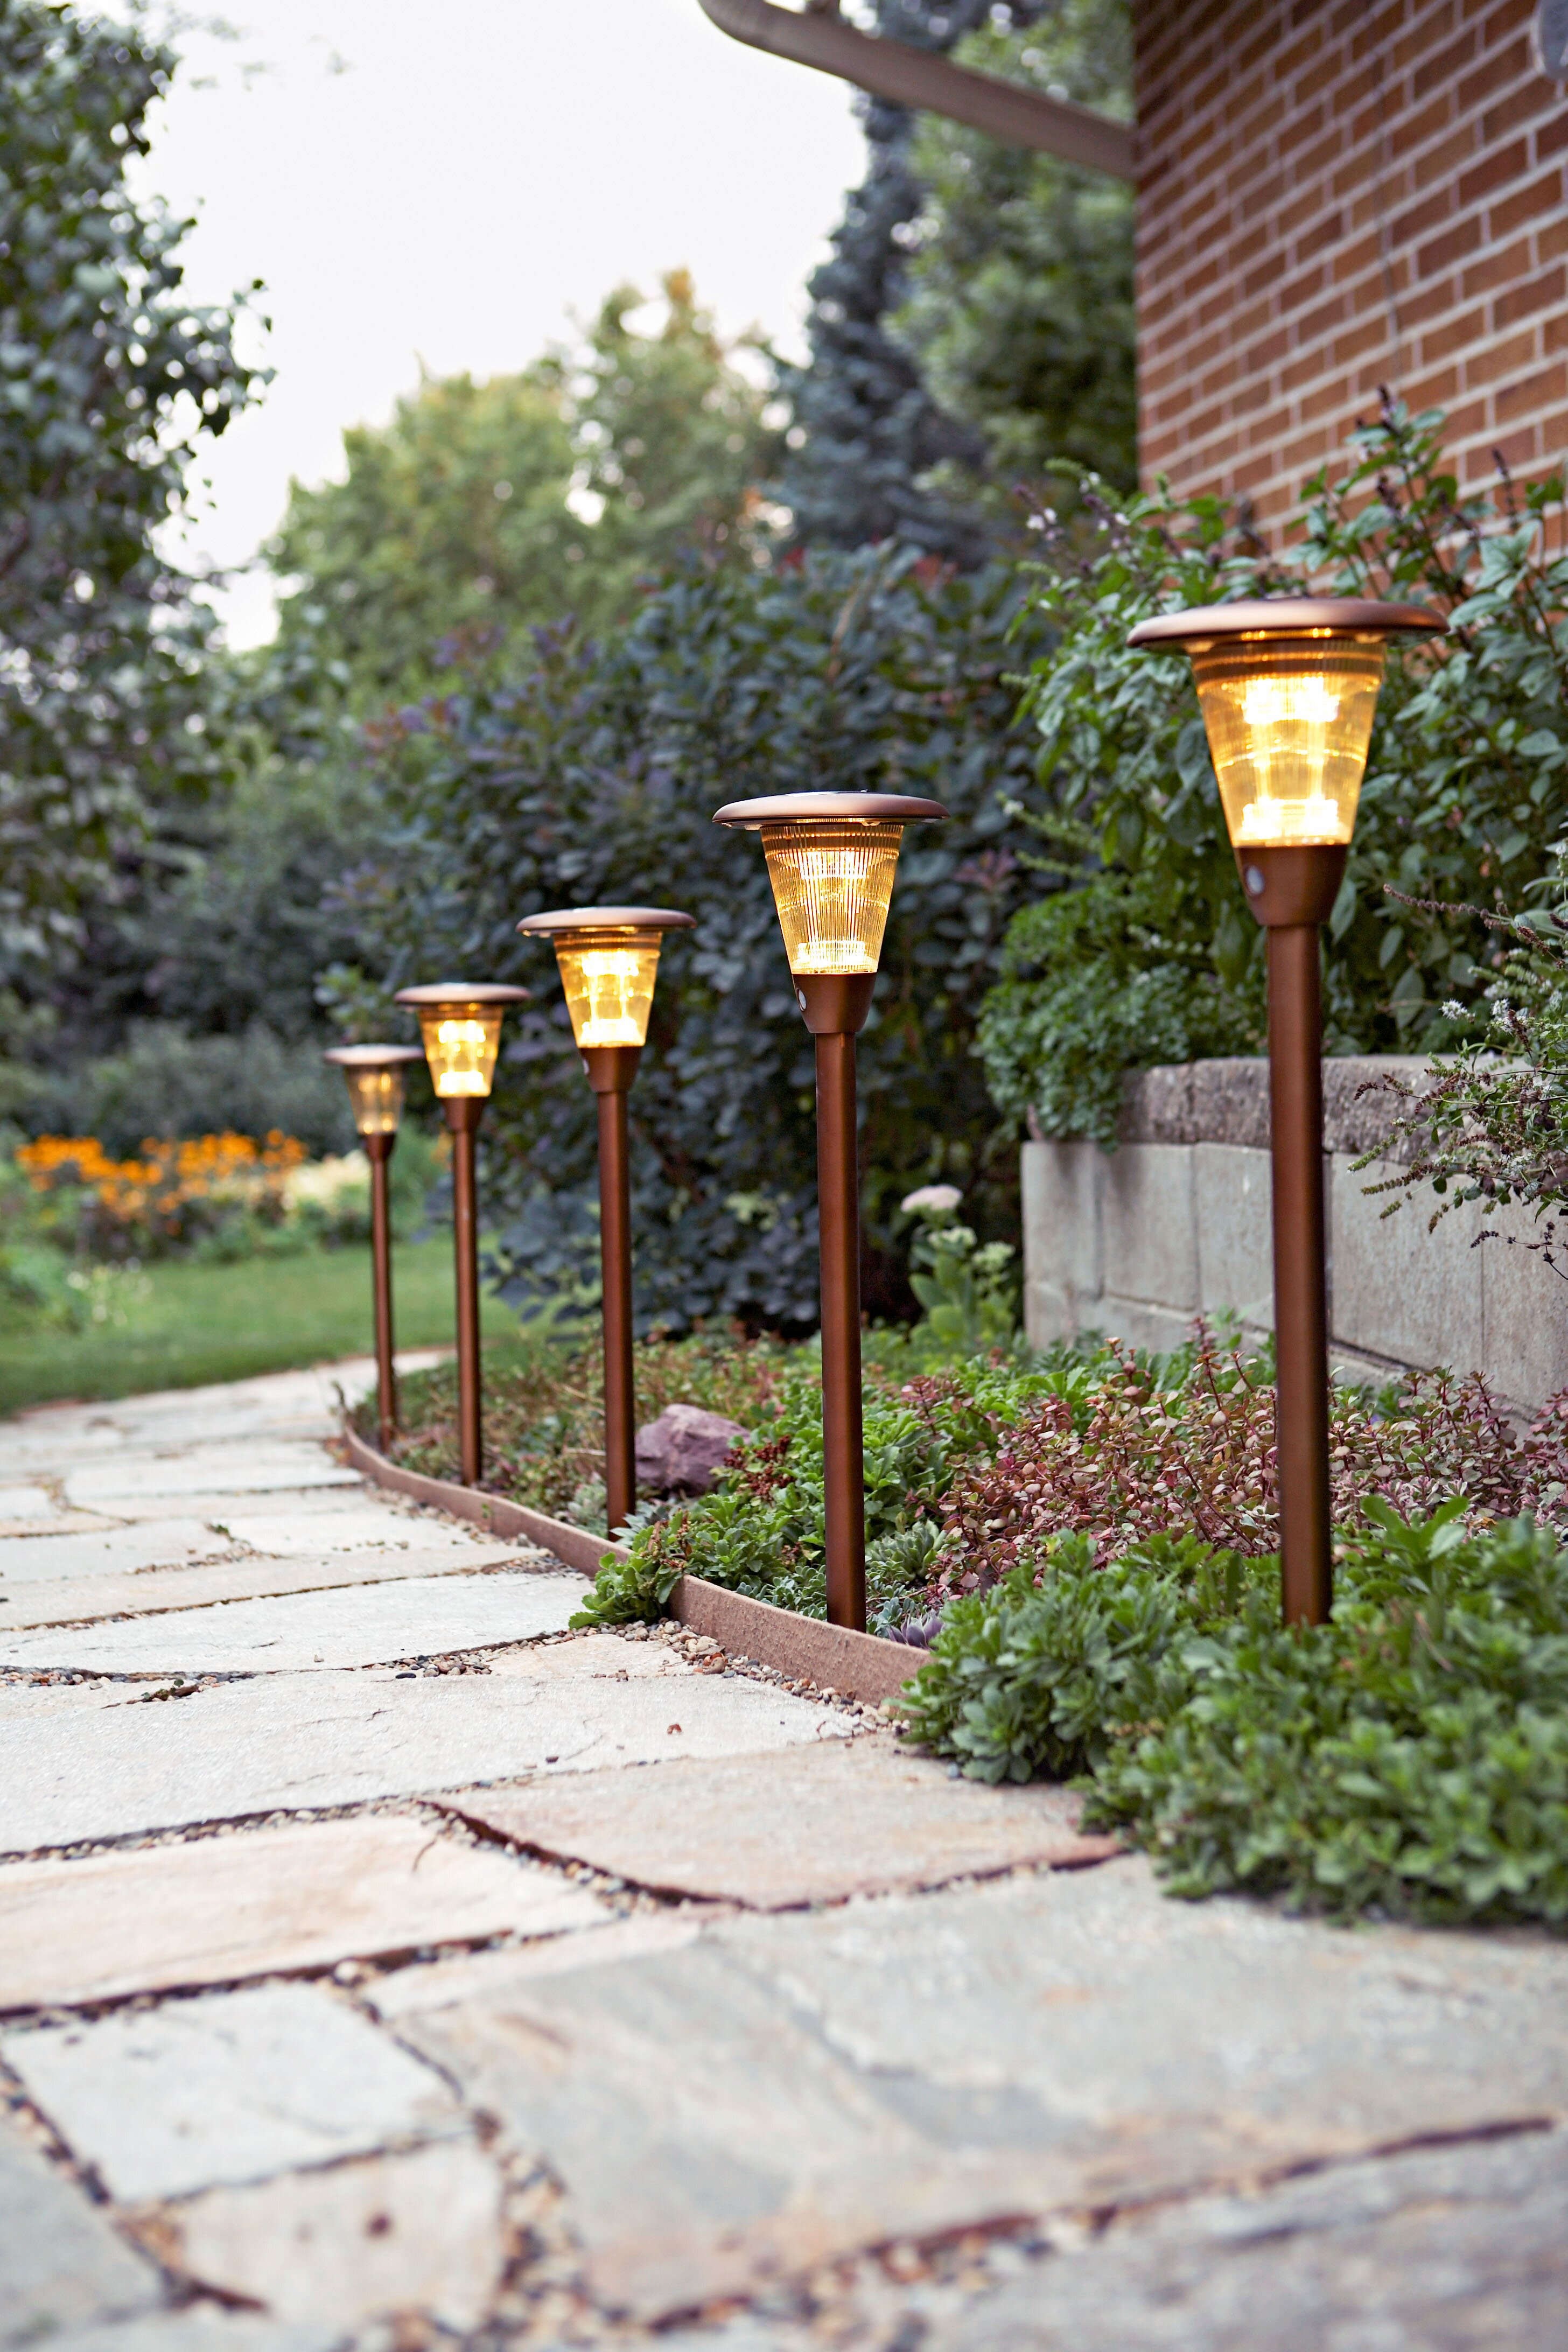 lighted solar lights along stone walking path